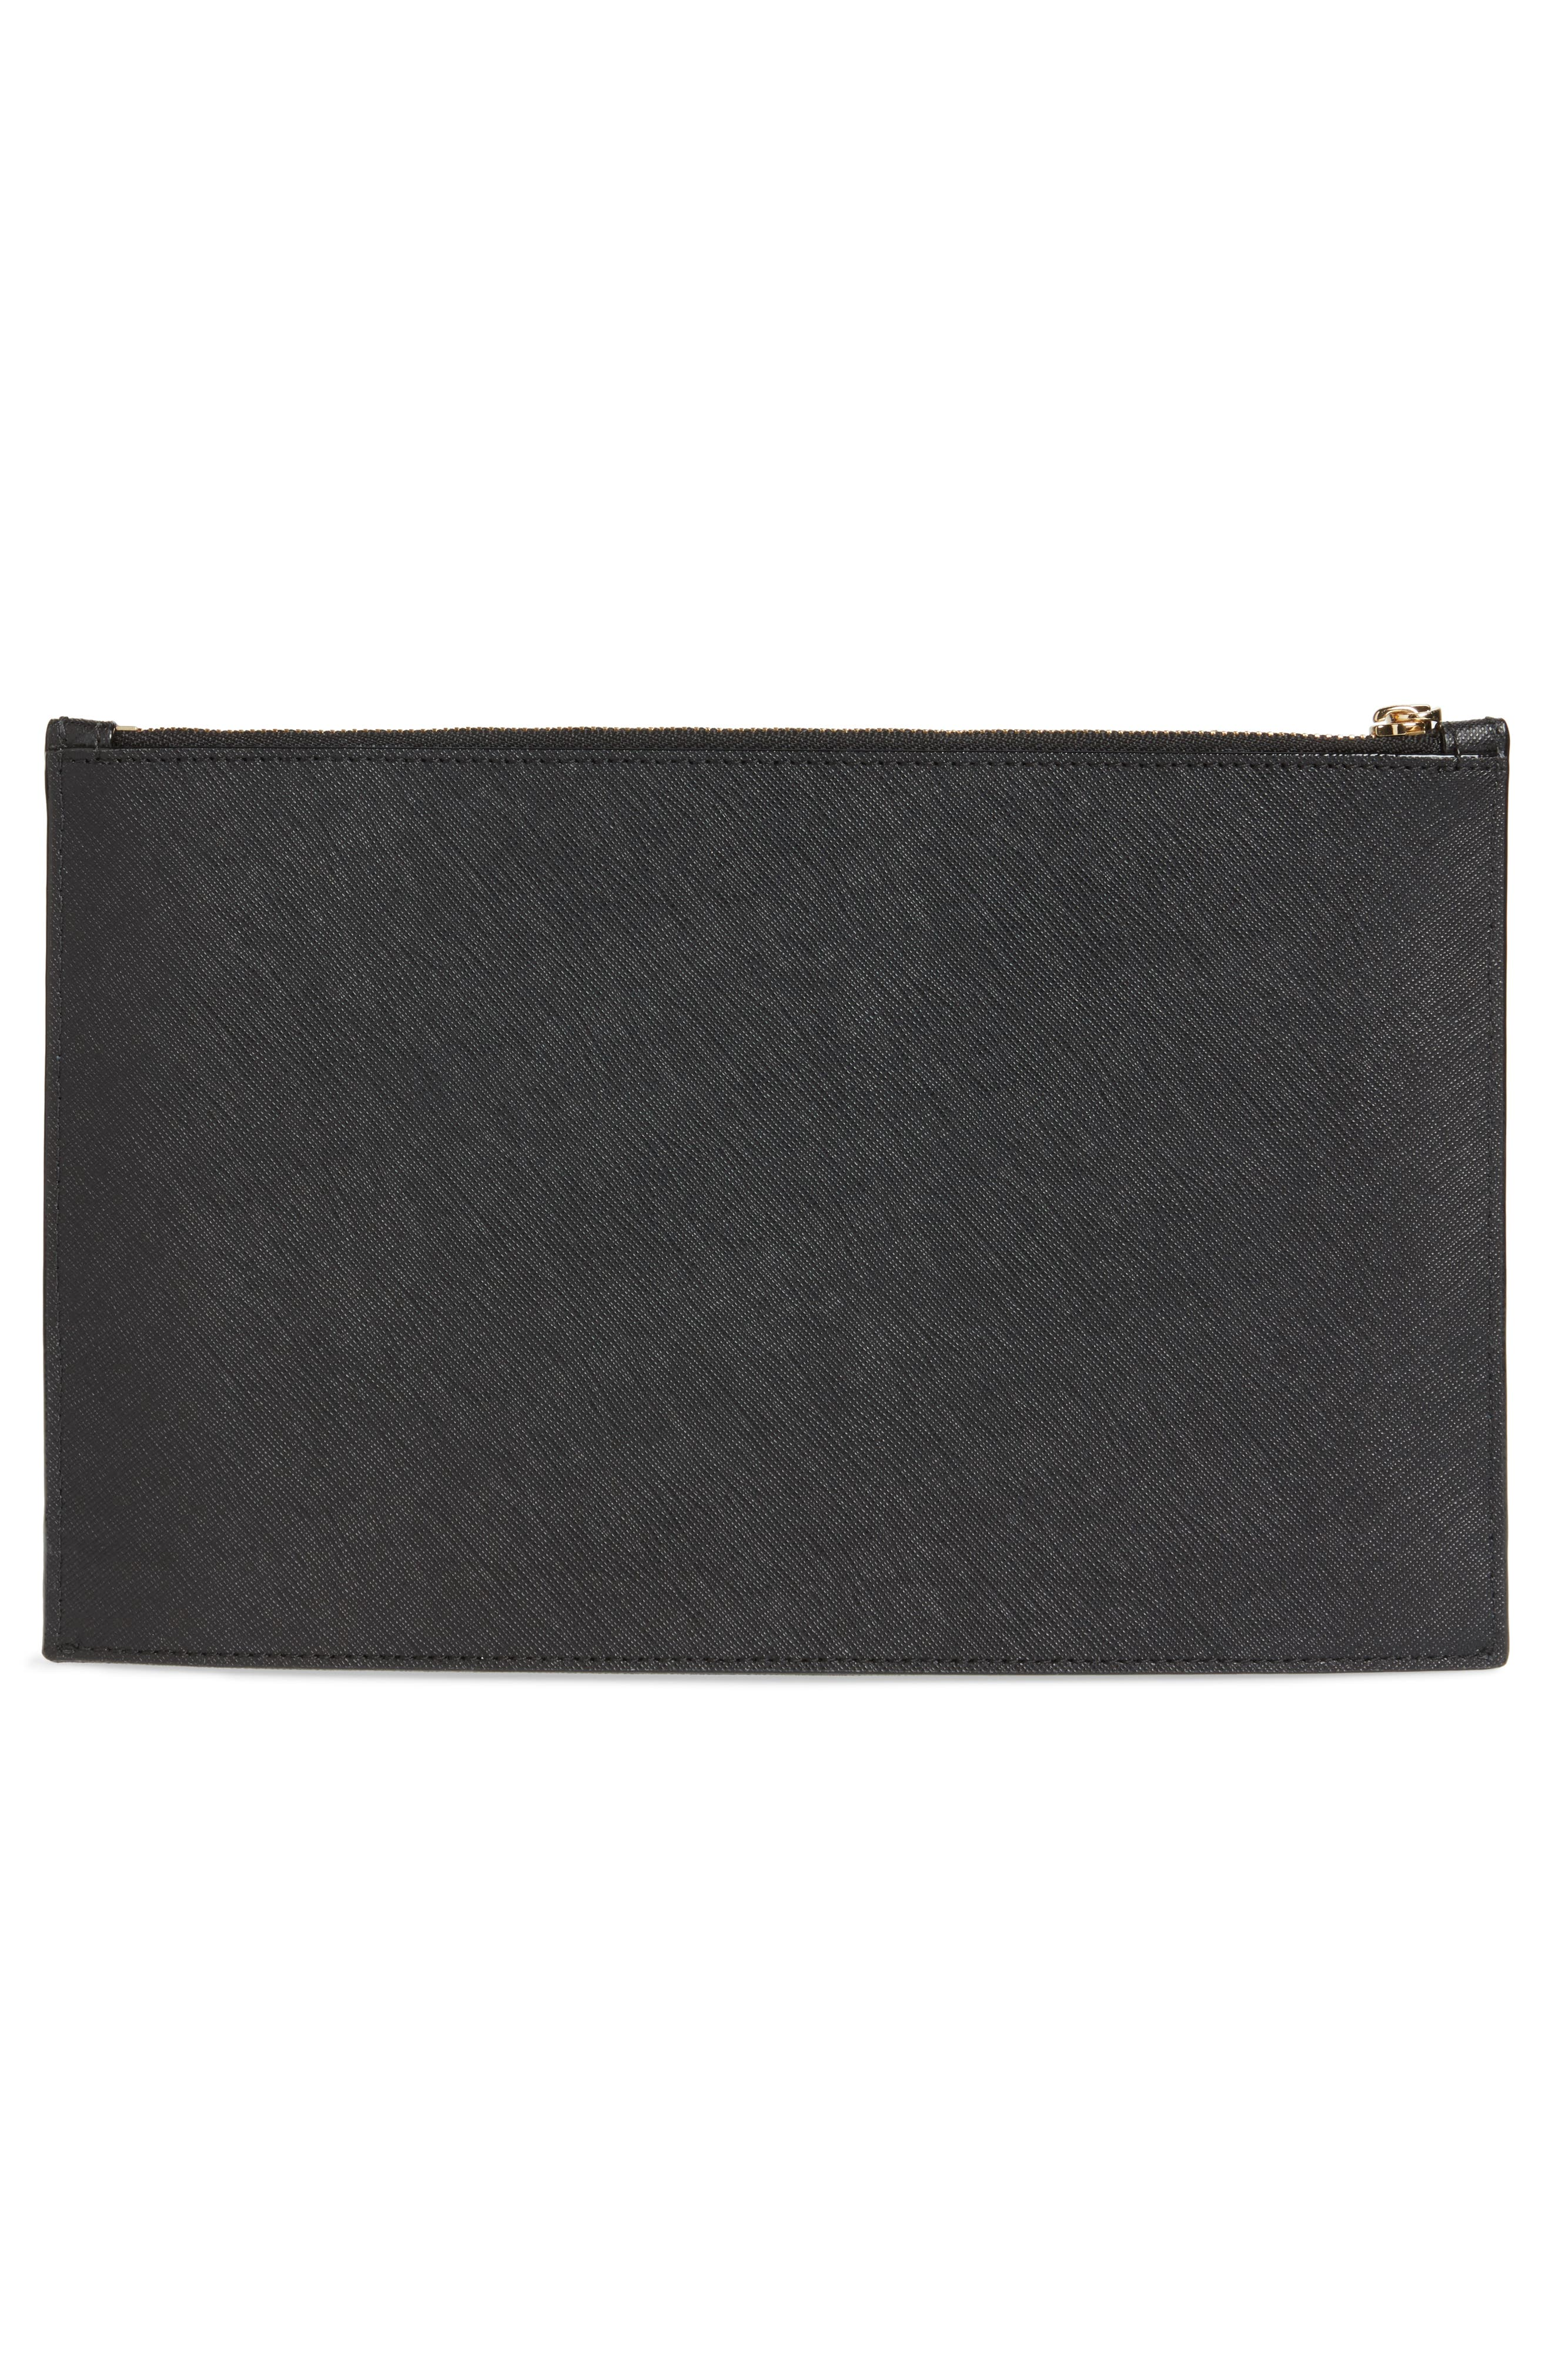 cameron street lilia leather clutch,                             Alternate thumbnail 3, color,                             001